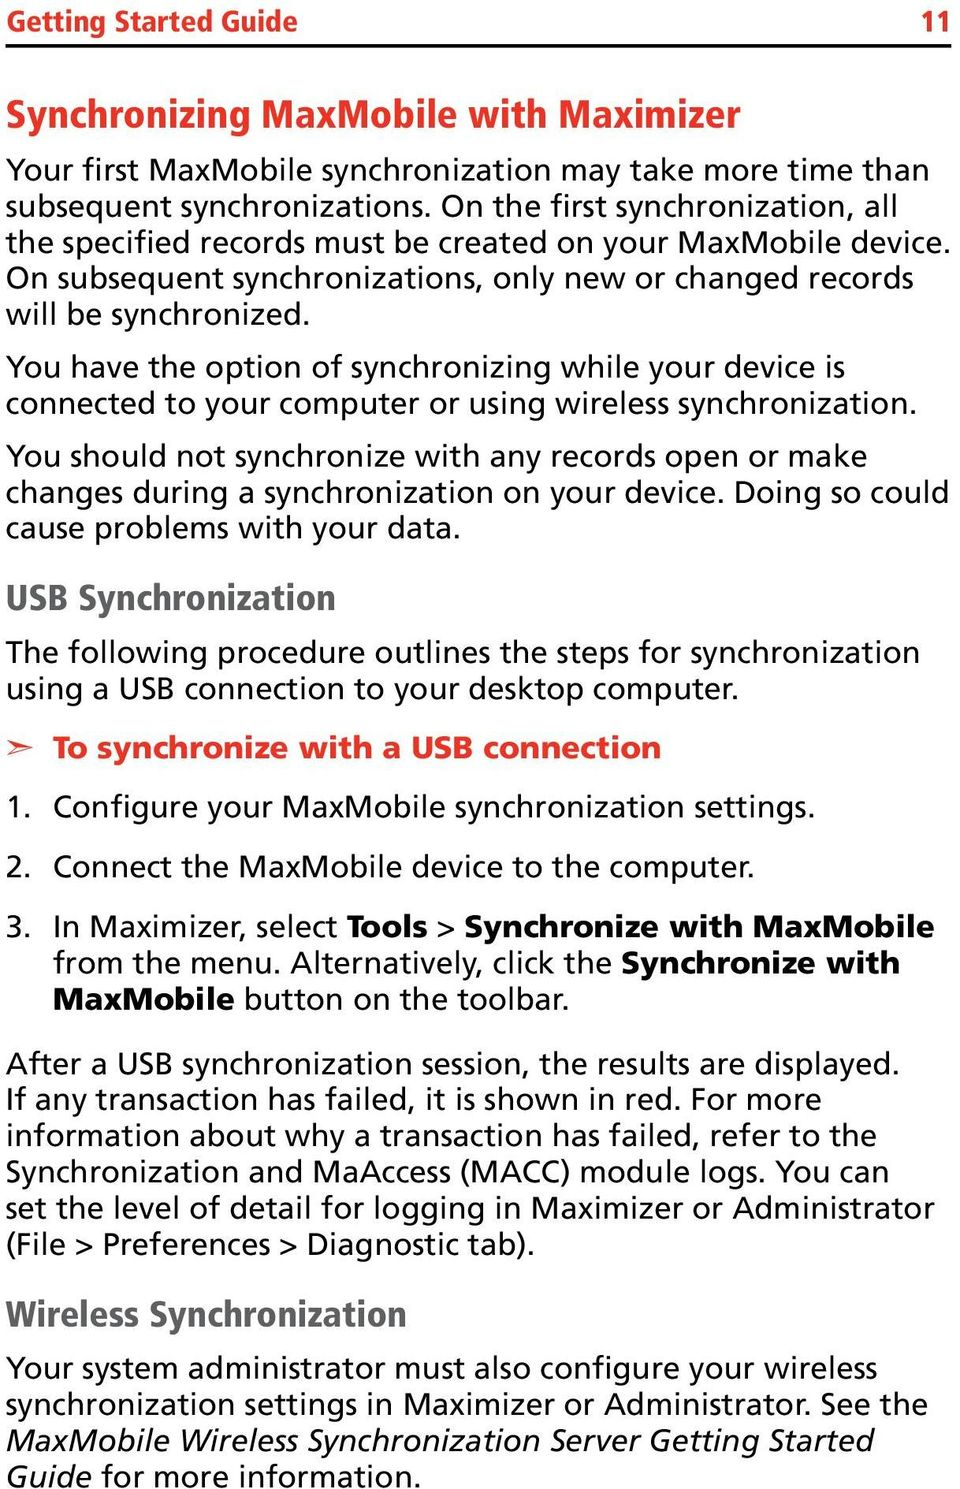 You have the option of synchronizing while your device is connected to your computer or using wireless synchronization.